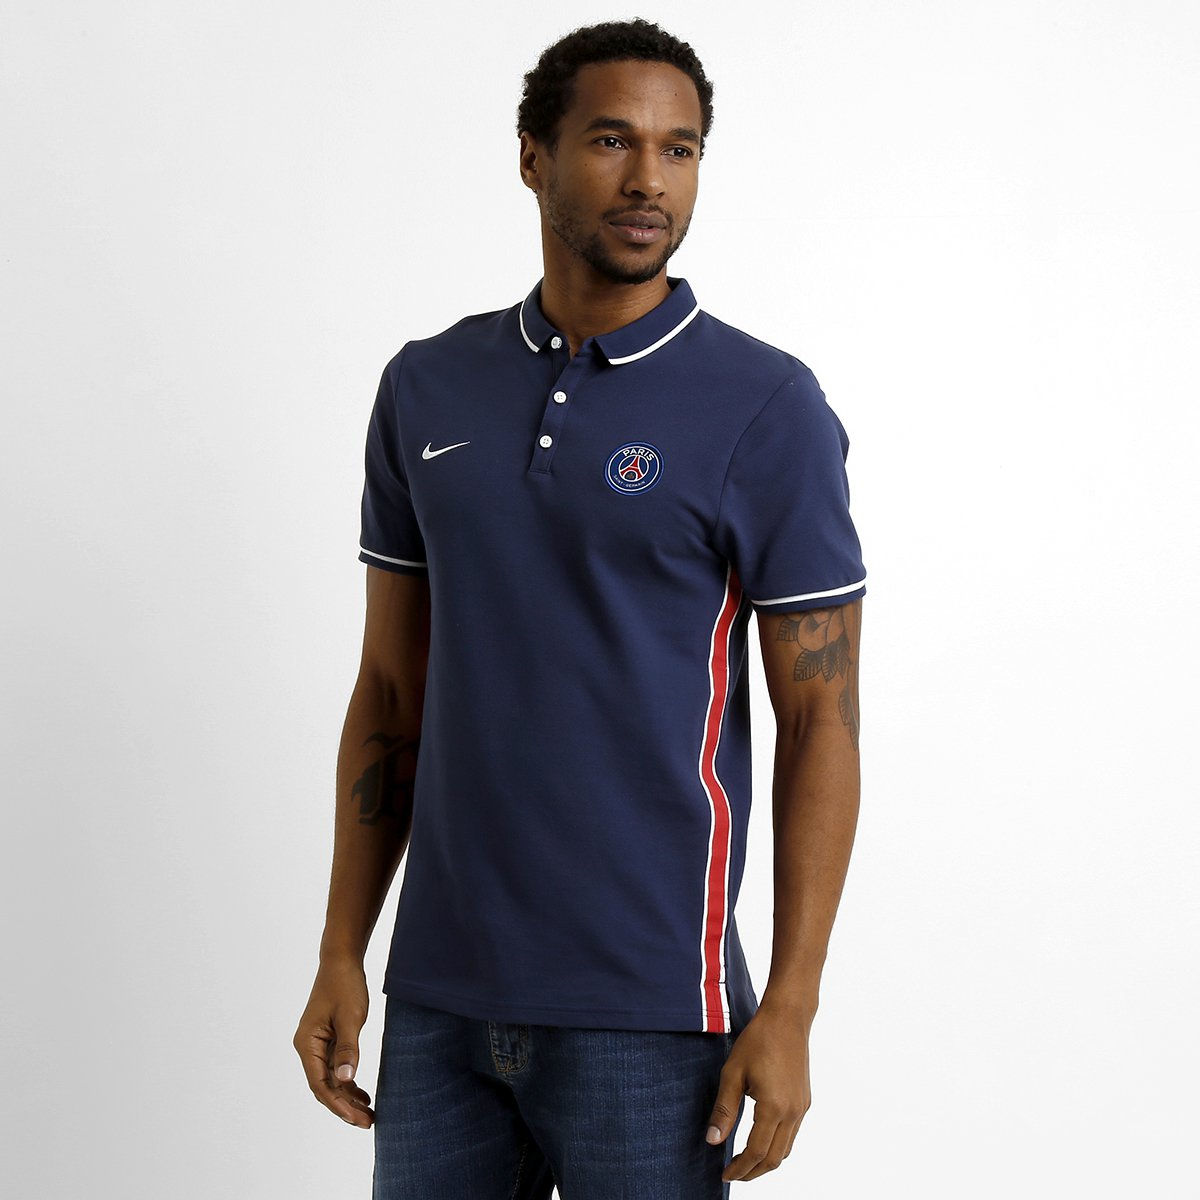 e0a3e7b9b9 Camisa Polo Nike Paris Saint Germain League - Compre Agora